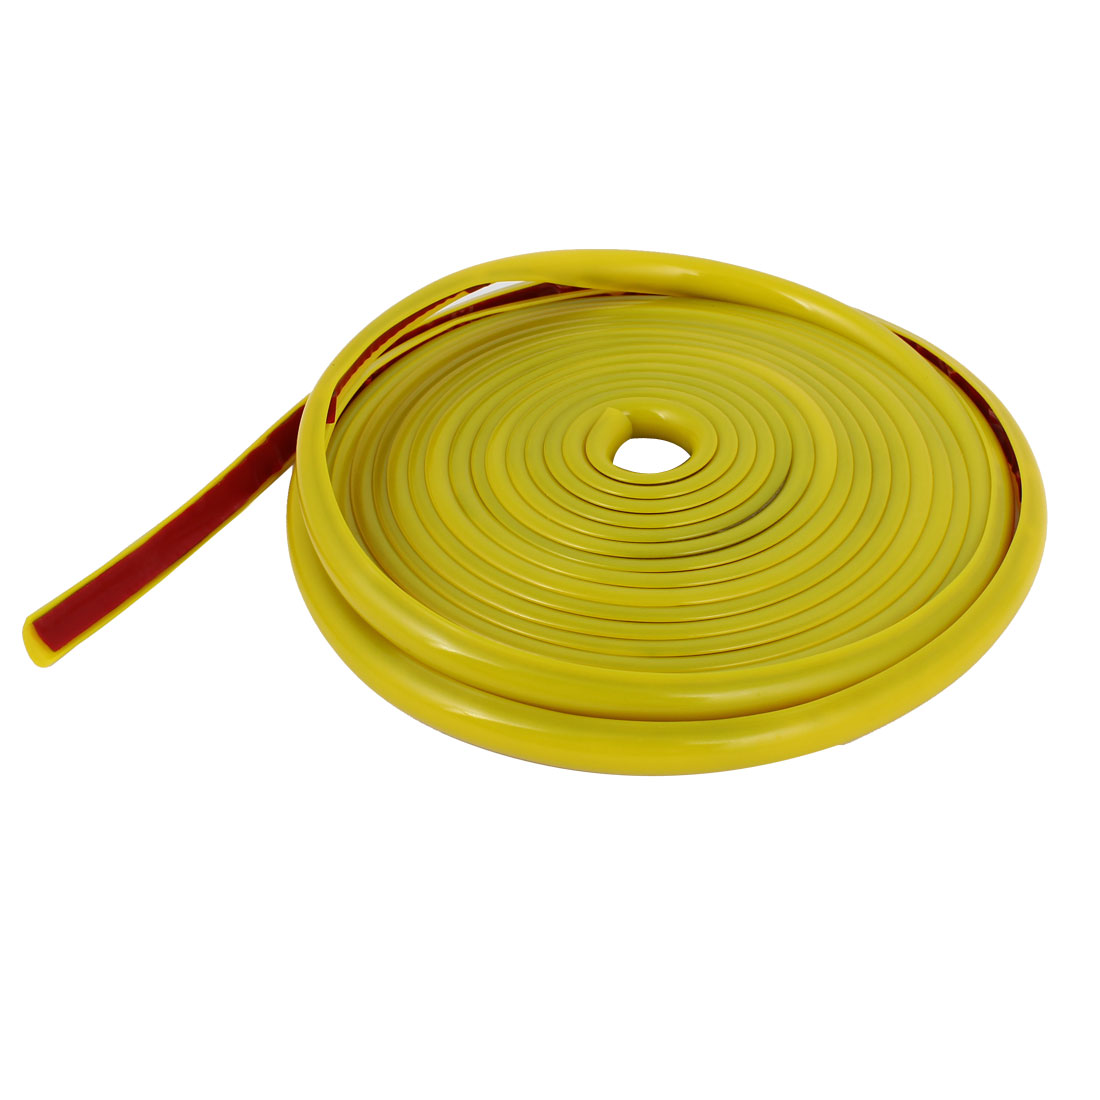 Yellow 4 Meter Length Soft Plastic Vehicle Car Moulding Trim Strip